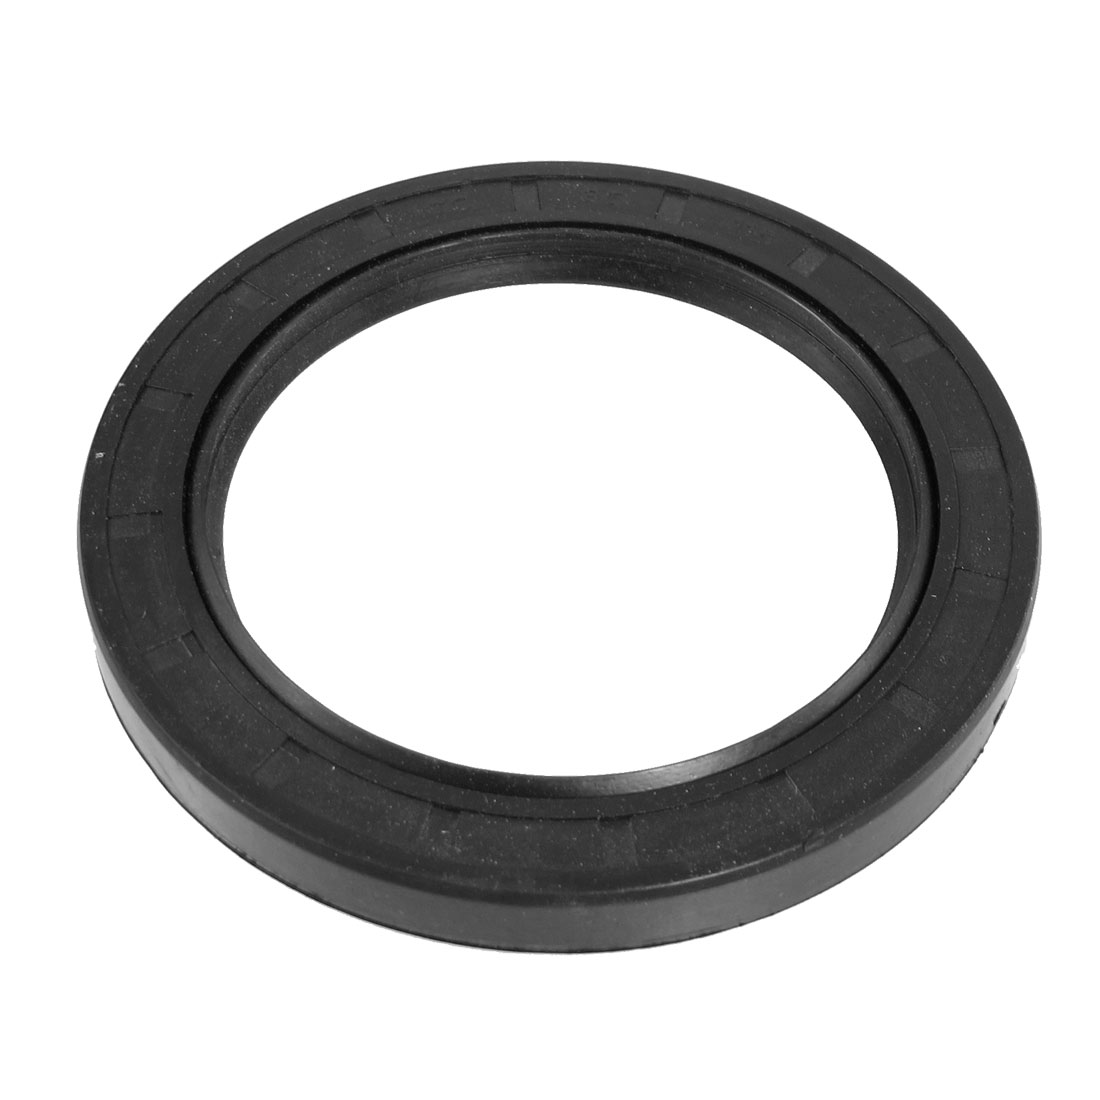 Steel Spring NBR Double Lip TC Oil Seal Black 85mm x 115mm x 12mm